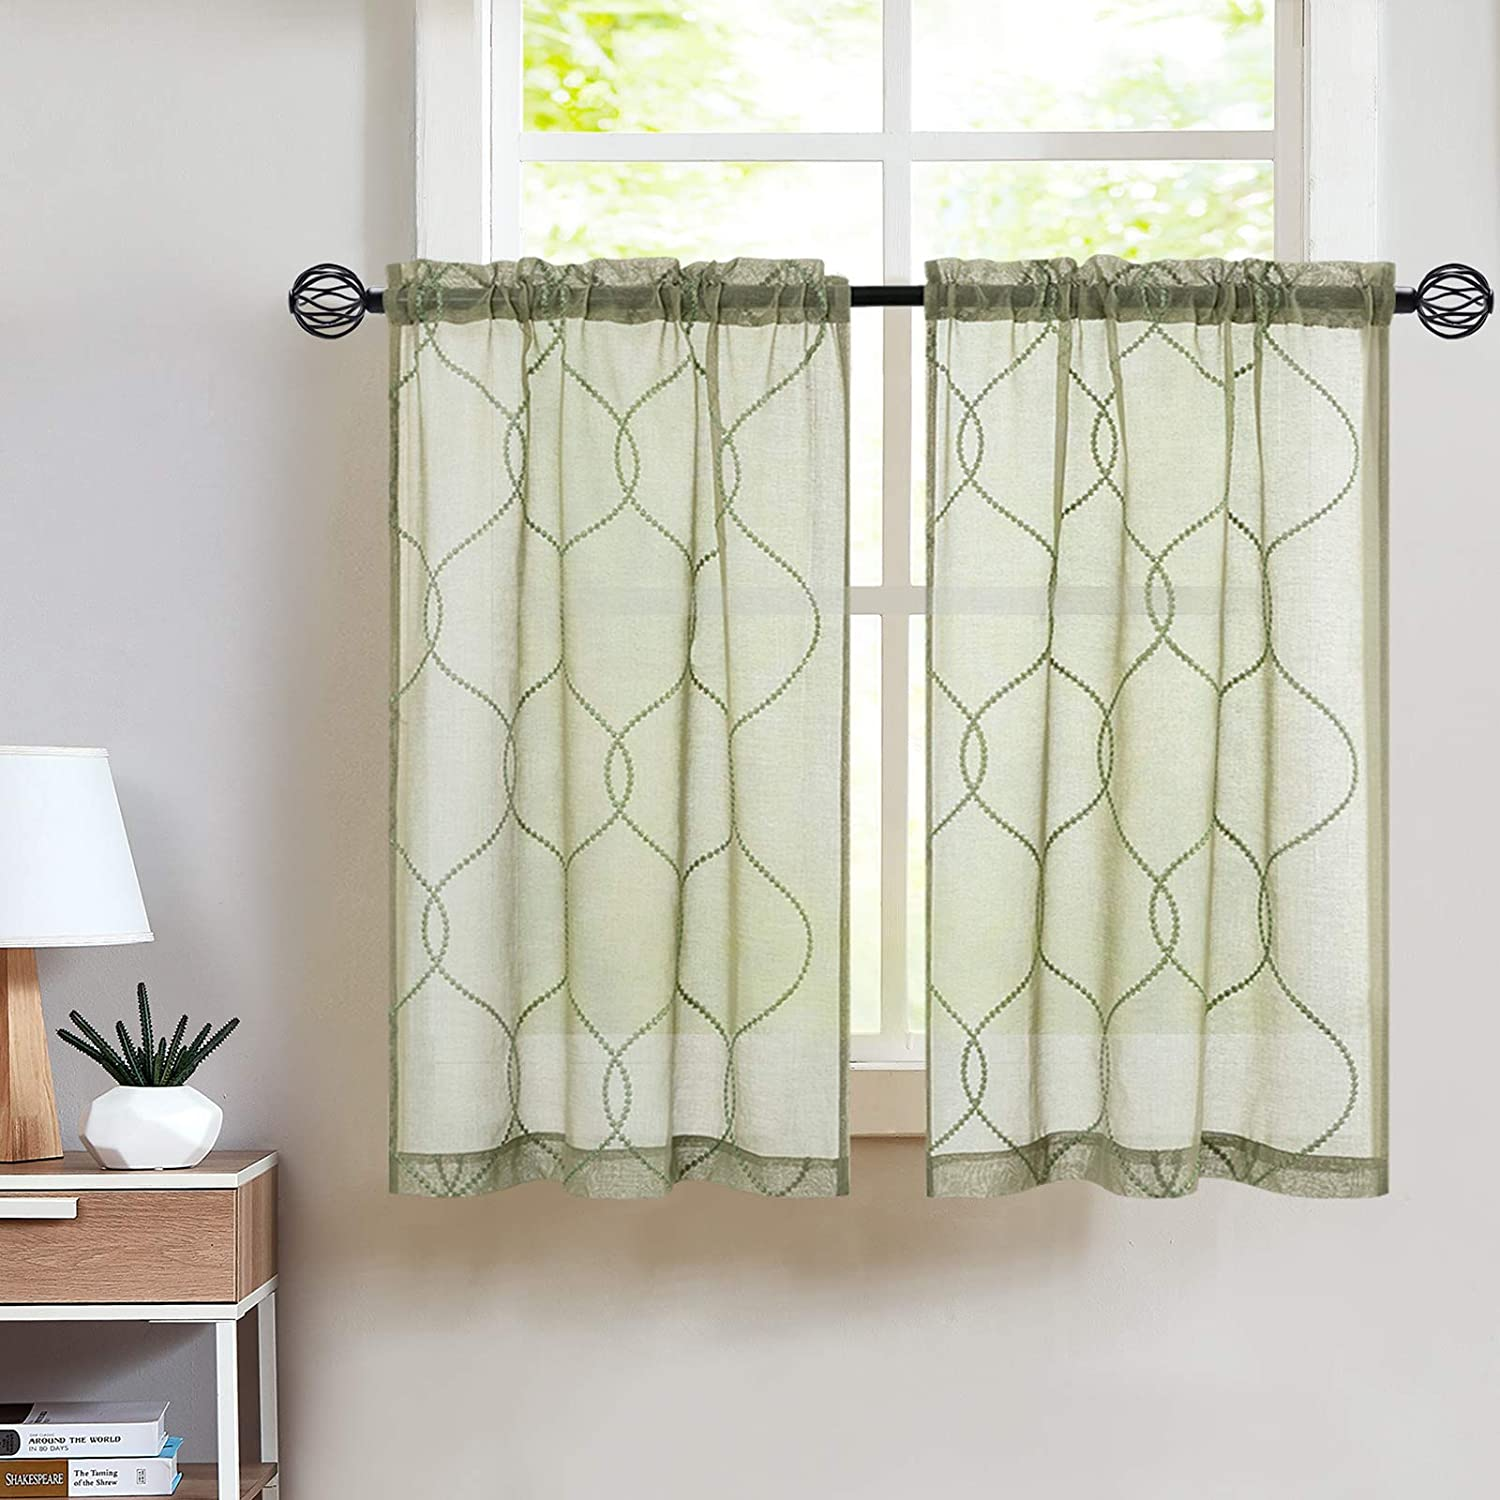 Astounding Gallery Of Green Kitchen Curtains Concept Sempoel Motor